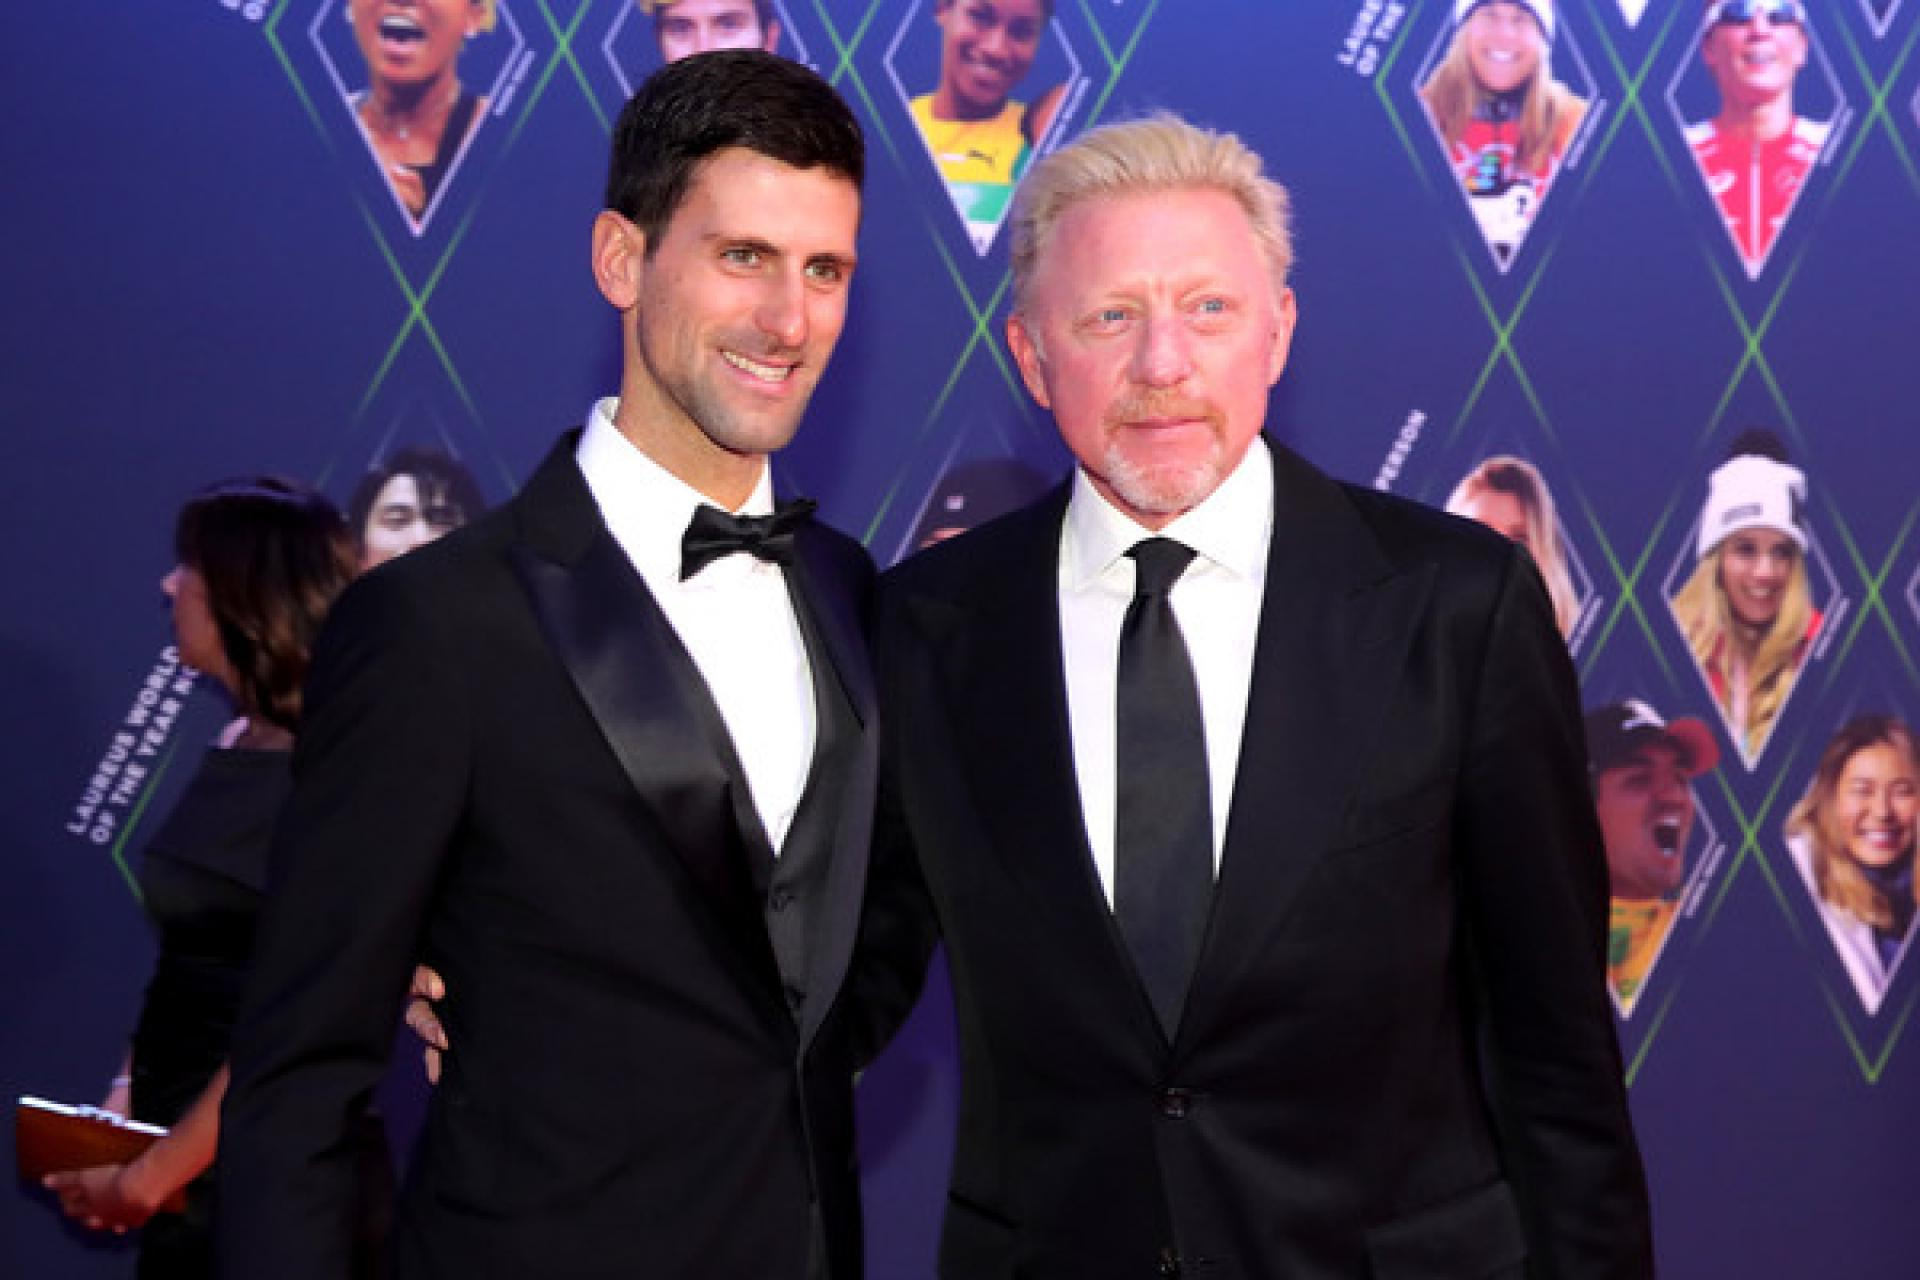 Novak Djokovic S Former Coach Brother You Made Mistake And Paid Expensive Price